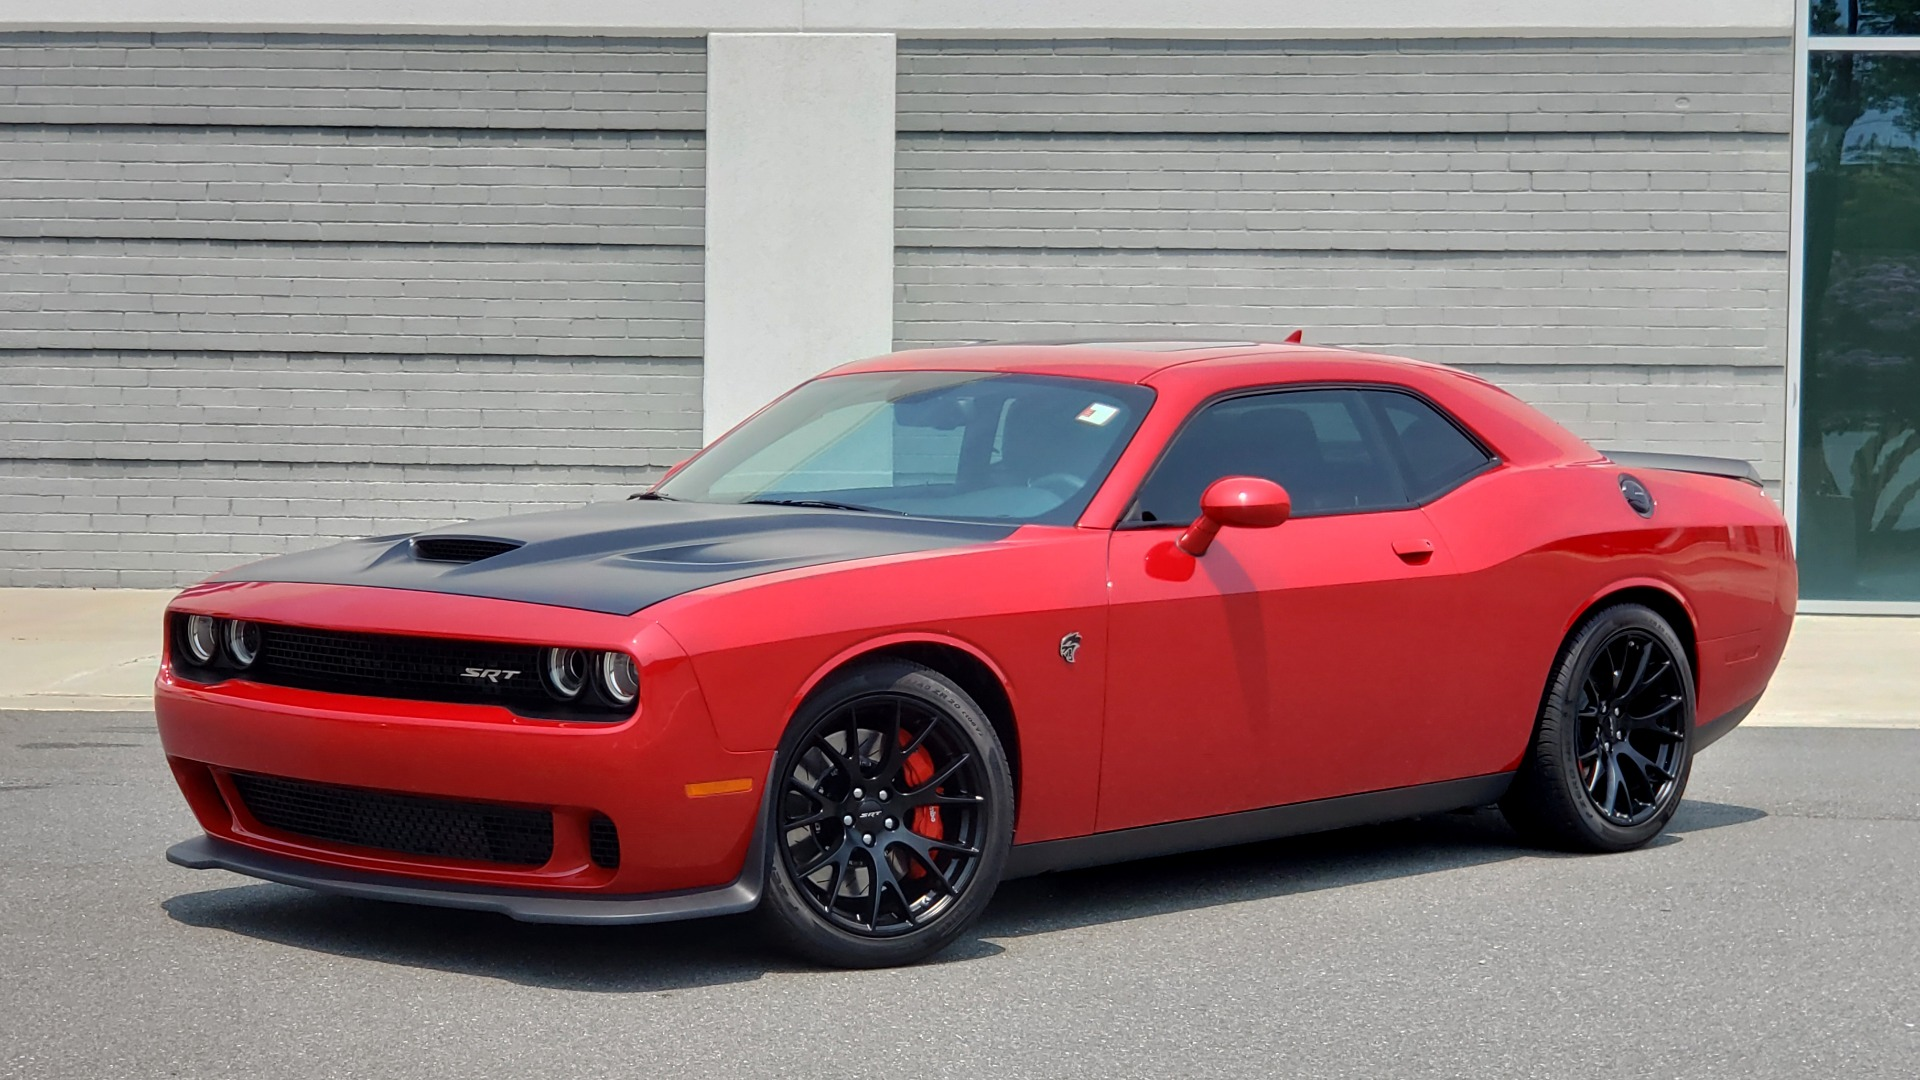 Used 2016 Dodge CHALLENGER SRT HELLCAT 707HP COUPE / AUTO / NAV / SUNROOF / H/K SND / REARVIEW for sale $60,995 at Formula Imports in Charlotte NC 28227 1